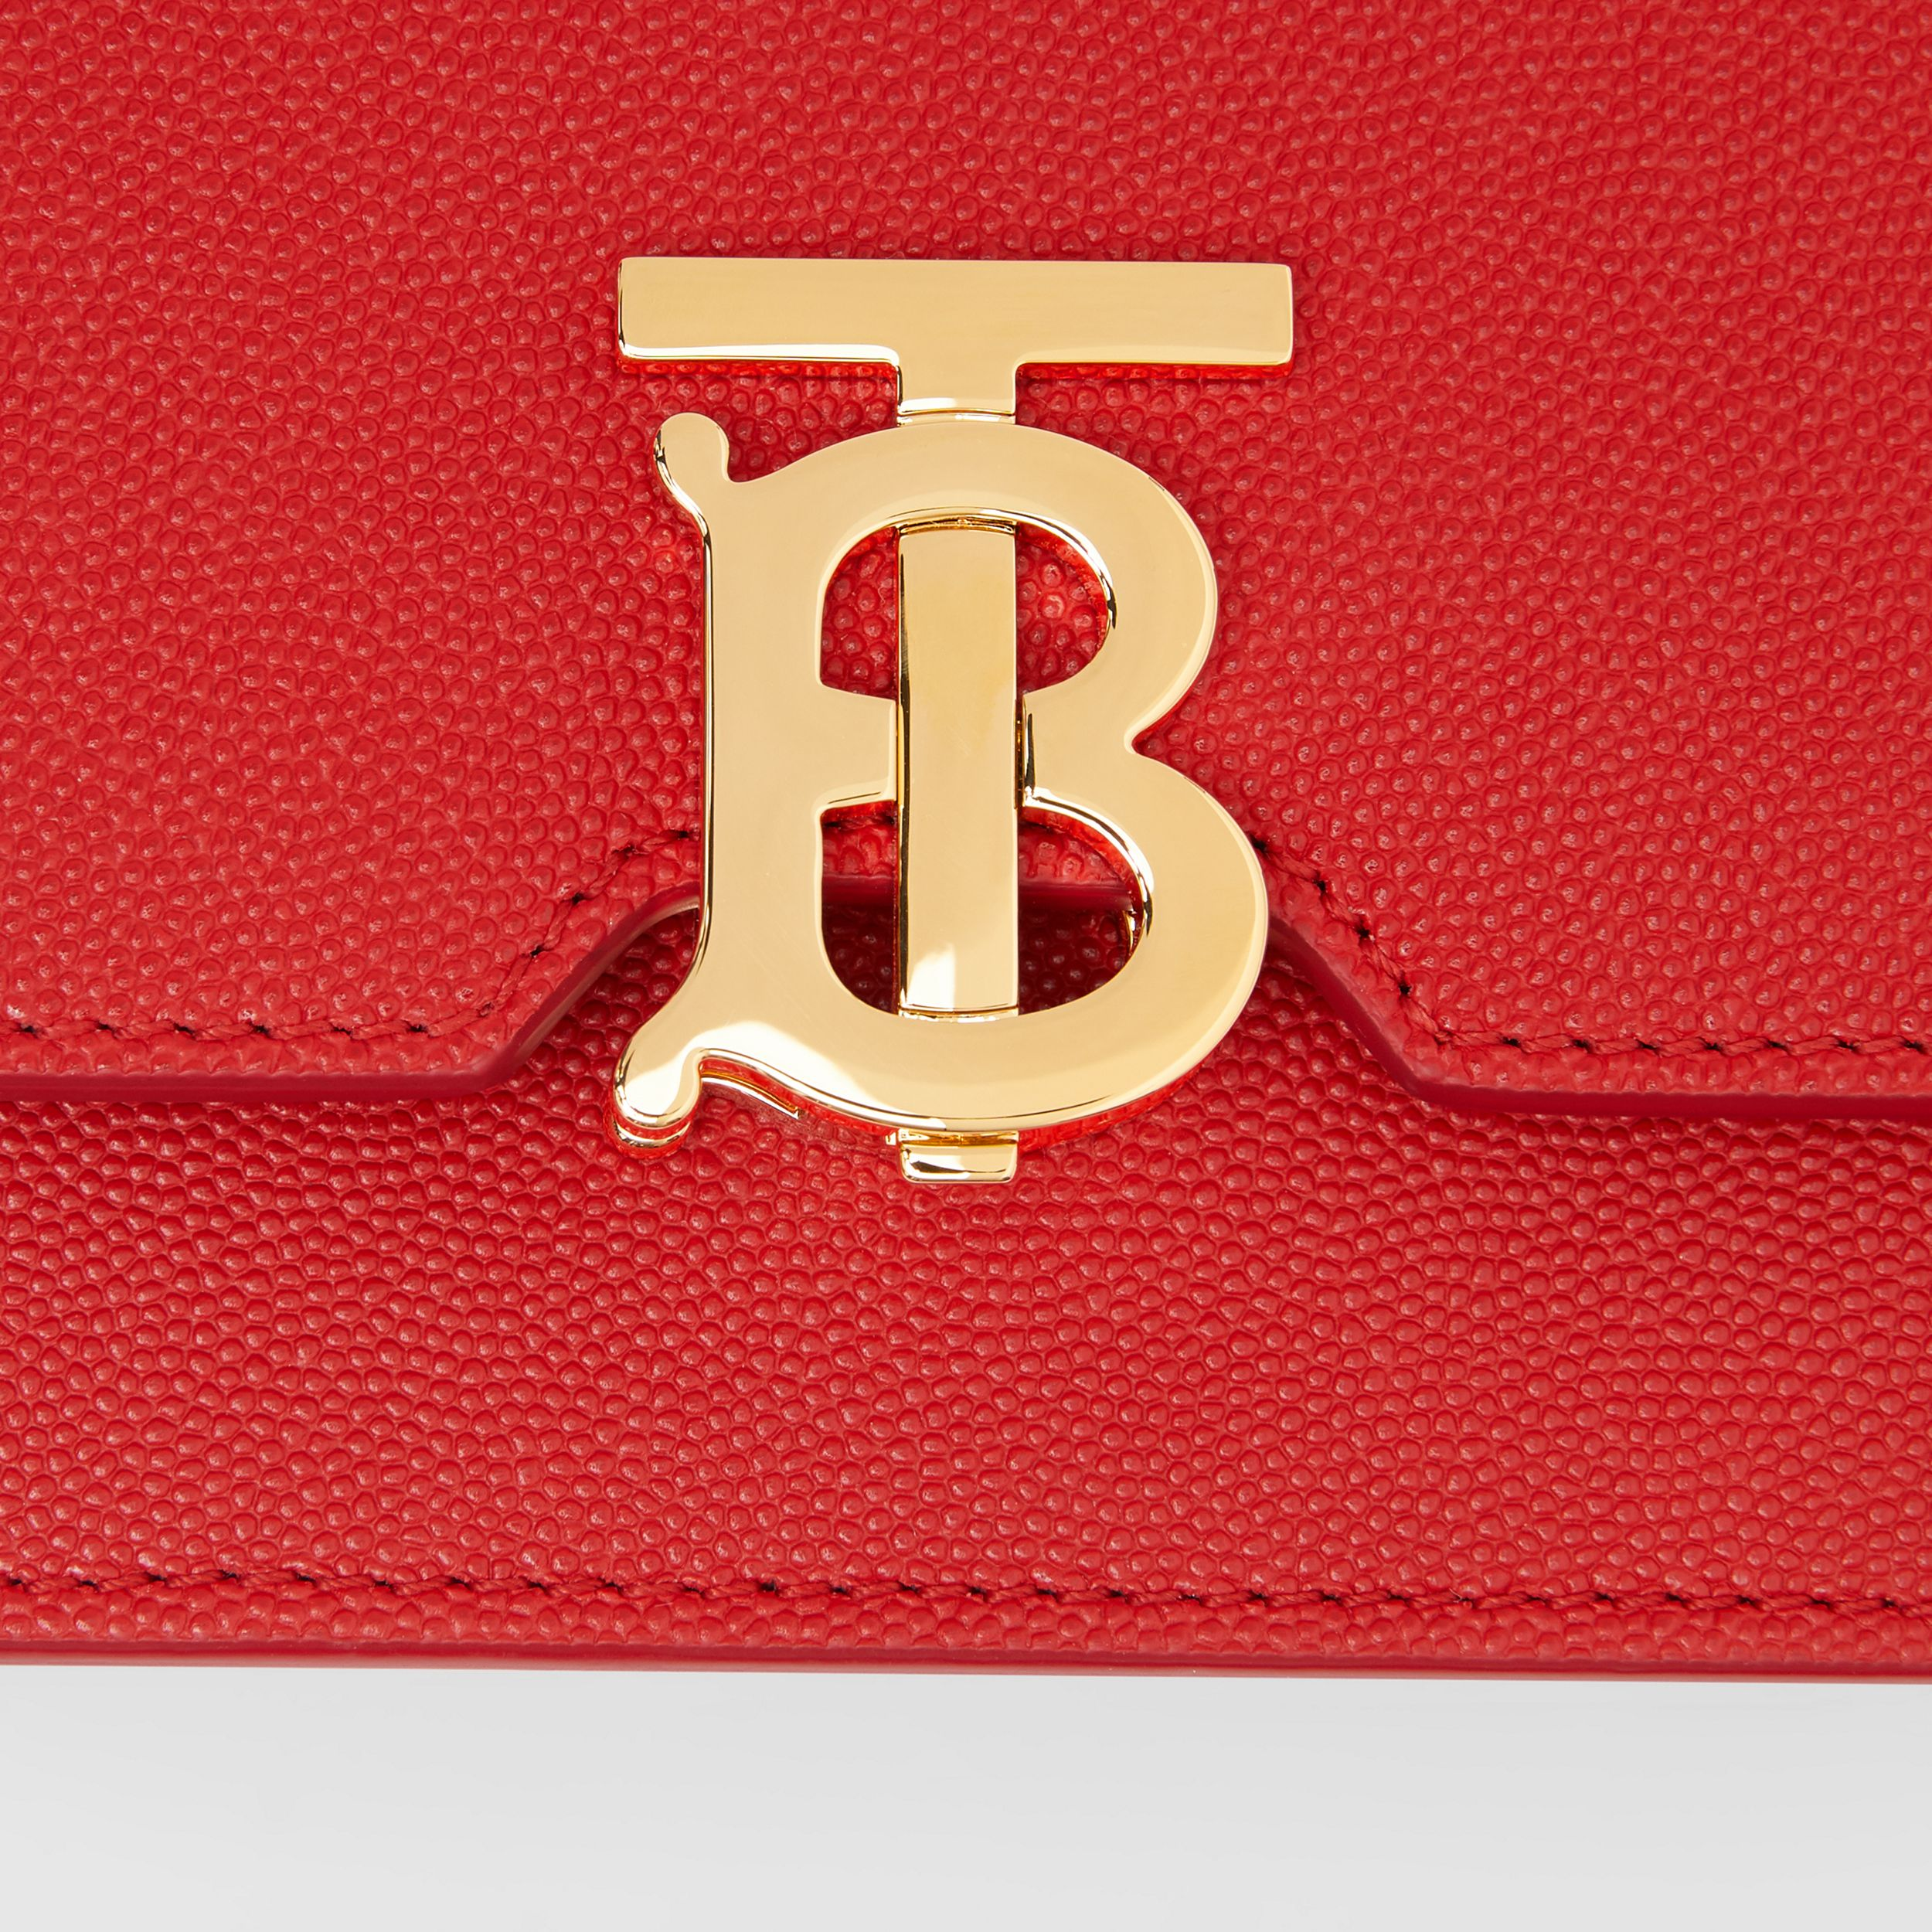 Mini Grainy Leather TB Bag in Bright Red | Burberry - 2